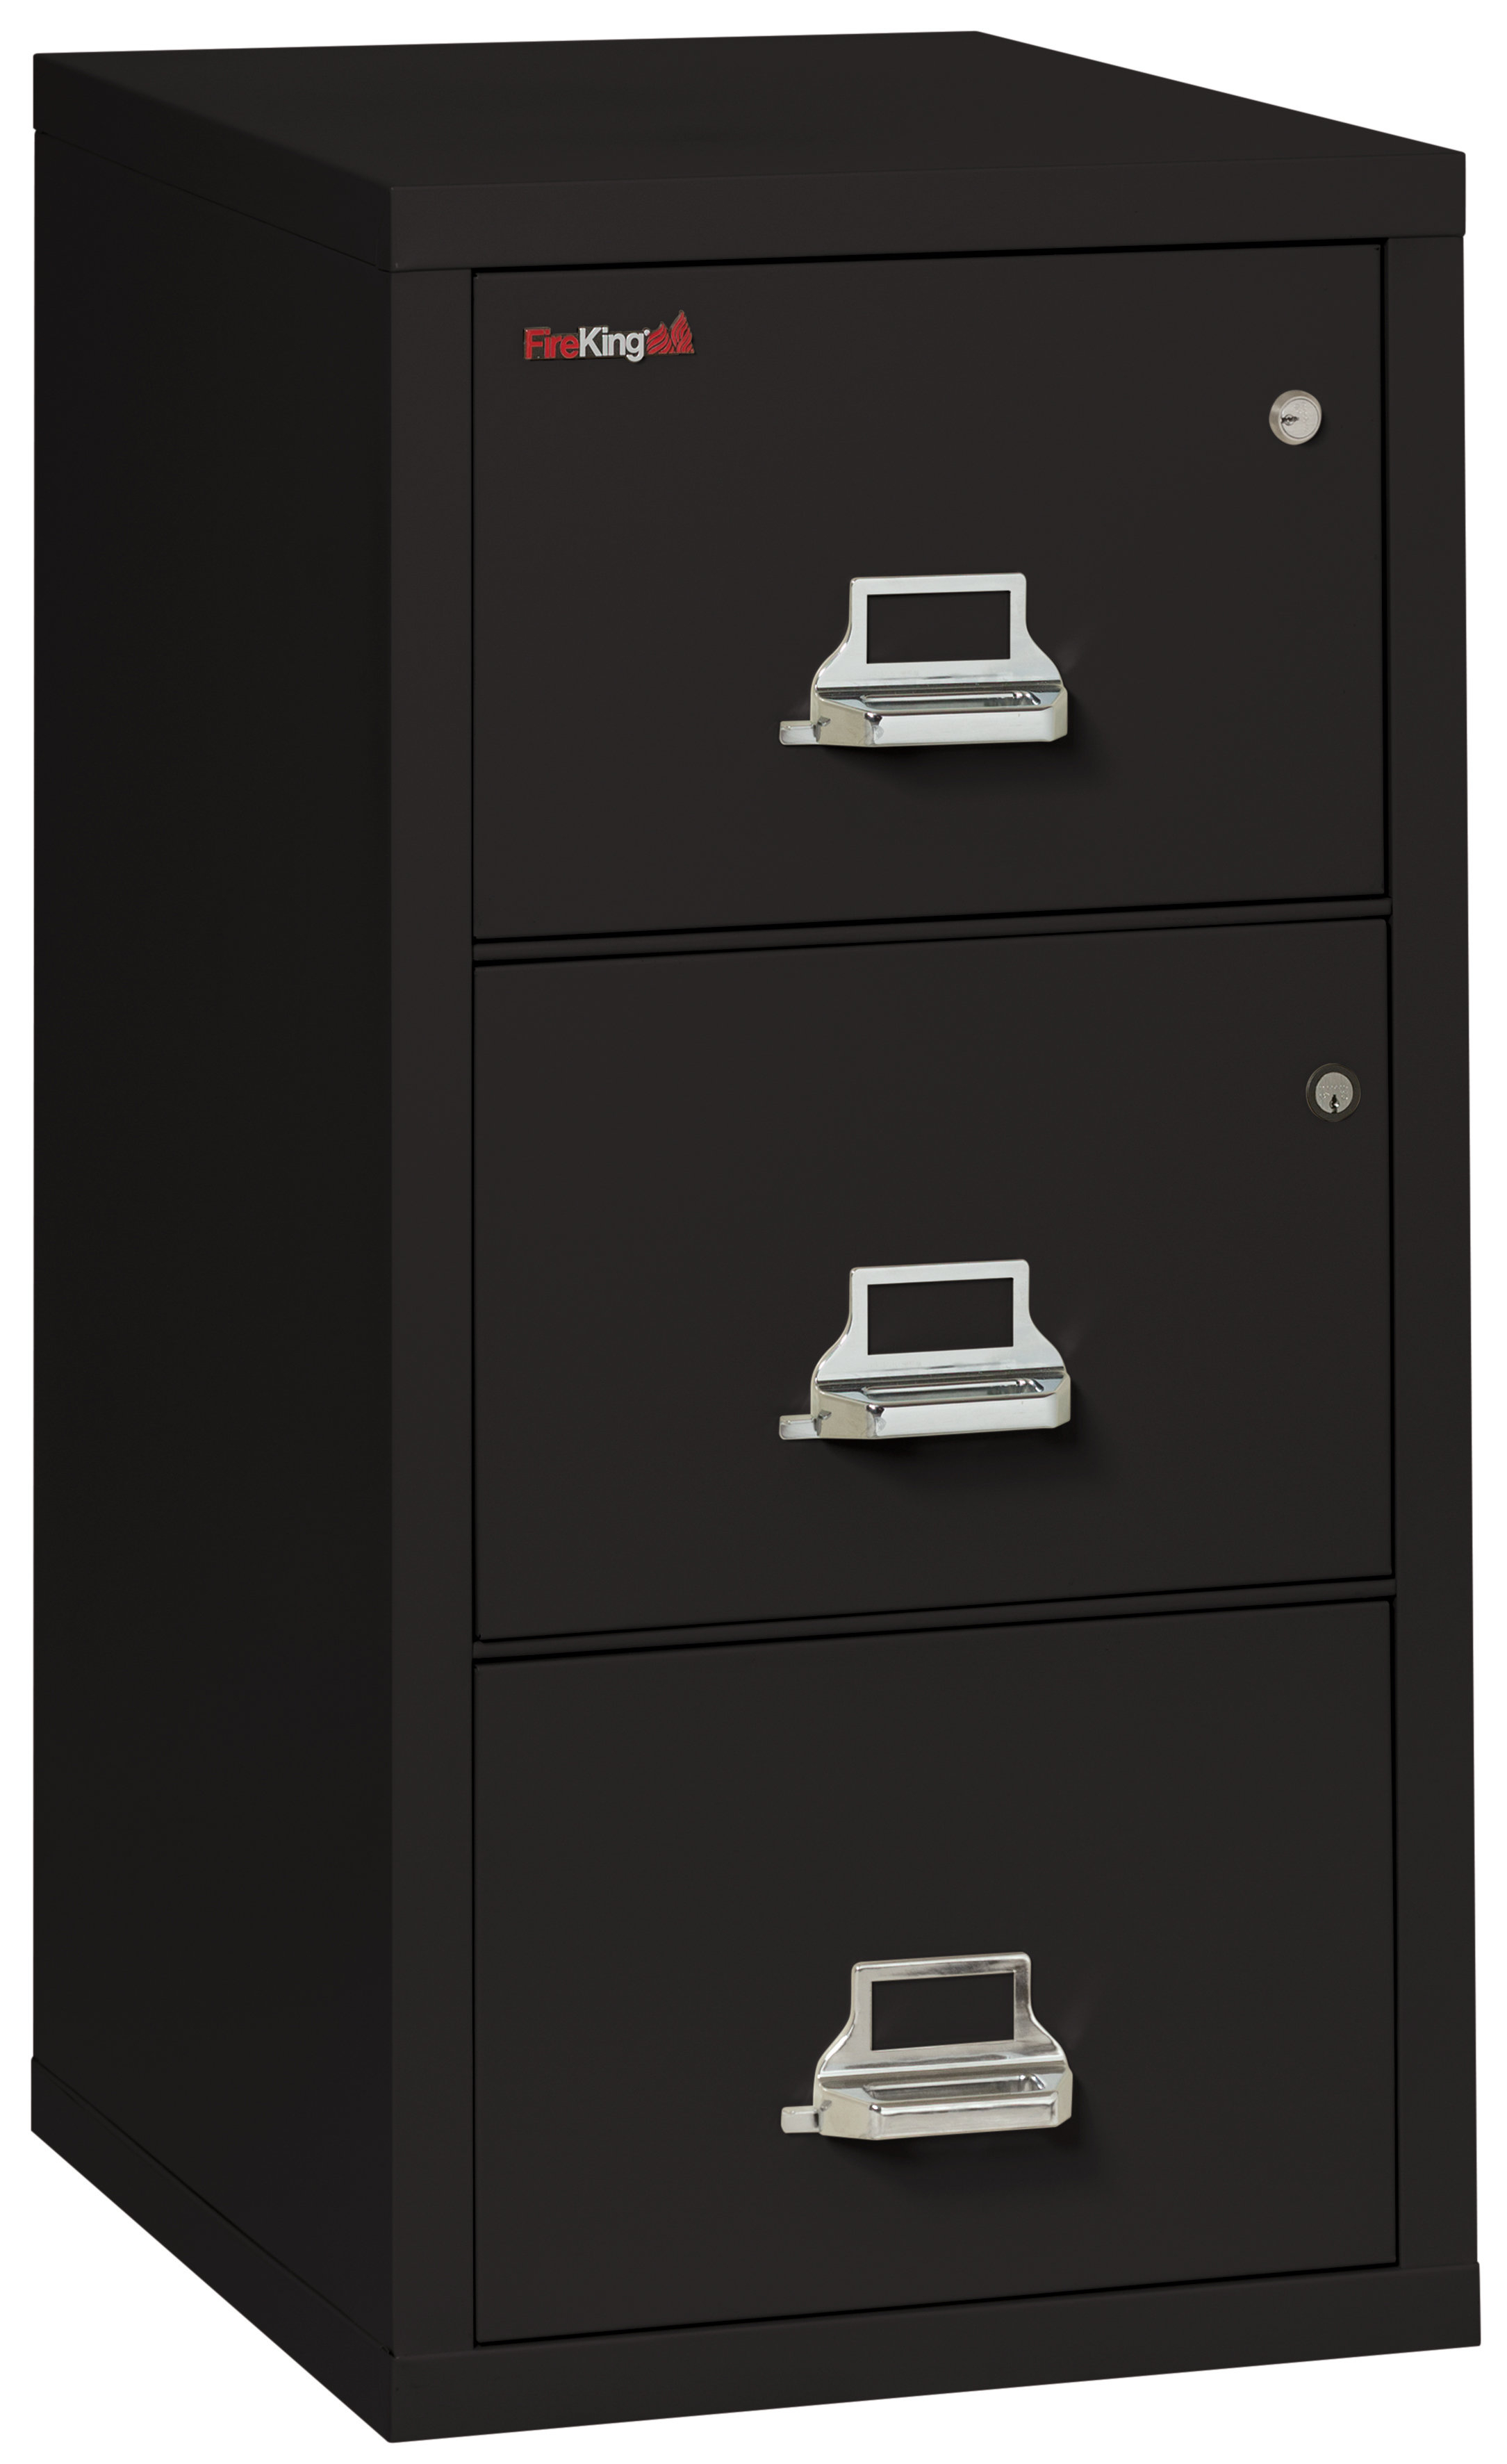 Fireking Legal Safe In A File Fireproof 3 Drawer Vertical File for size 2169 X 3546